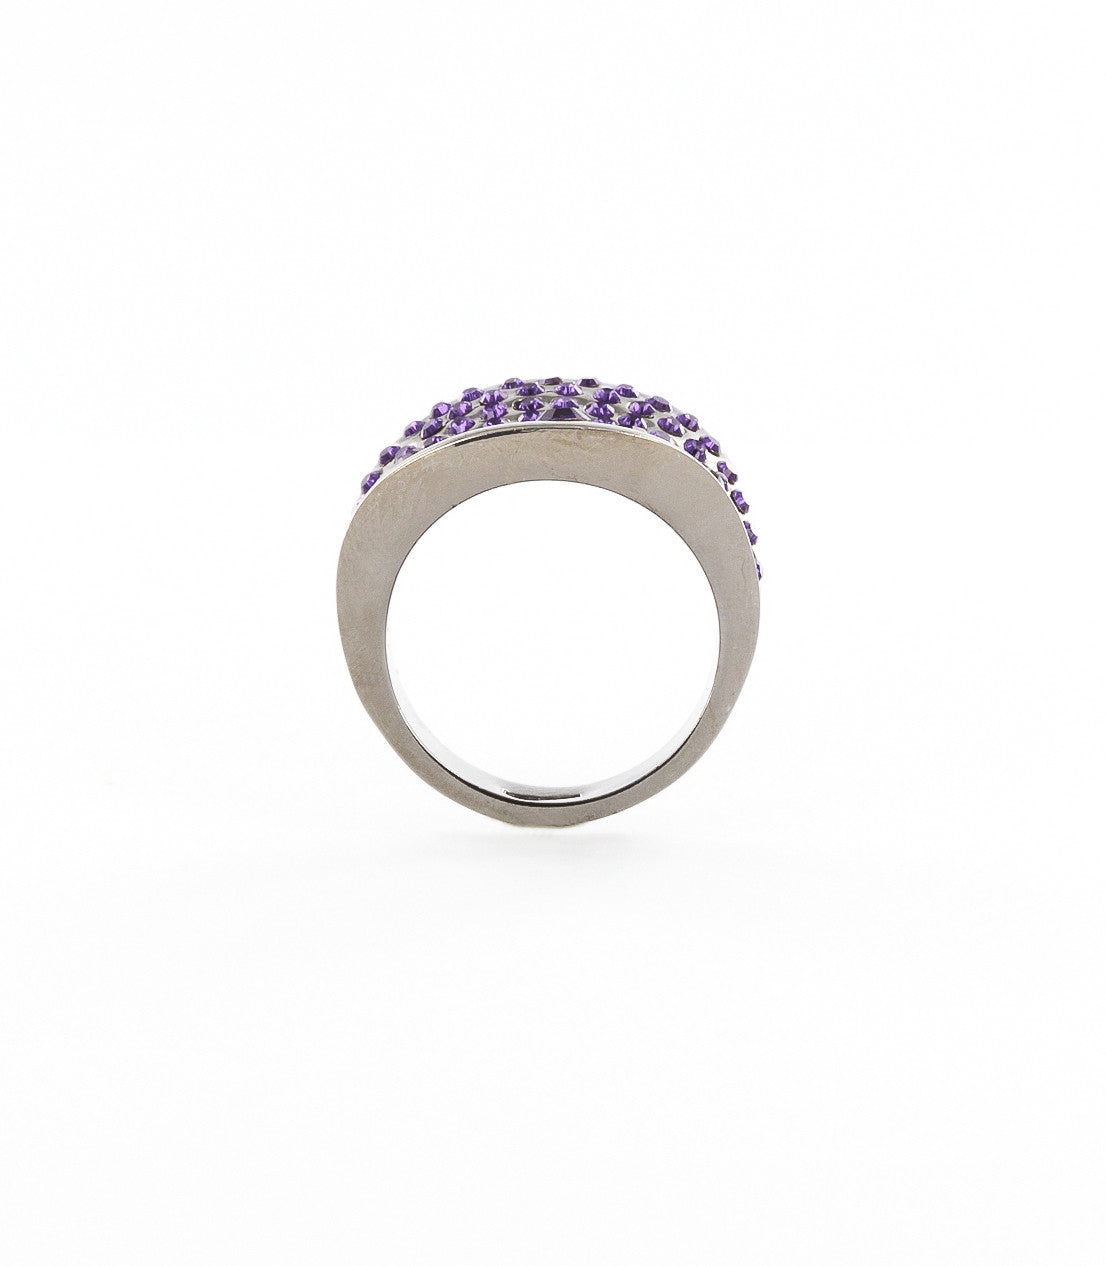 Kite shaped structural ring with pave rhinestones.